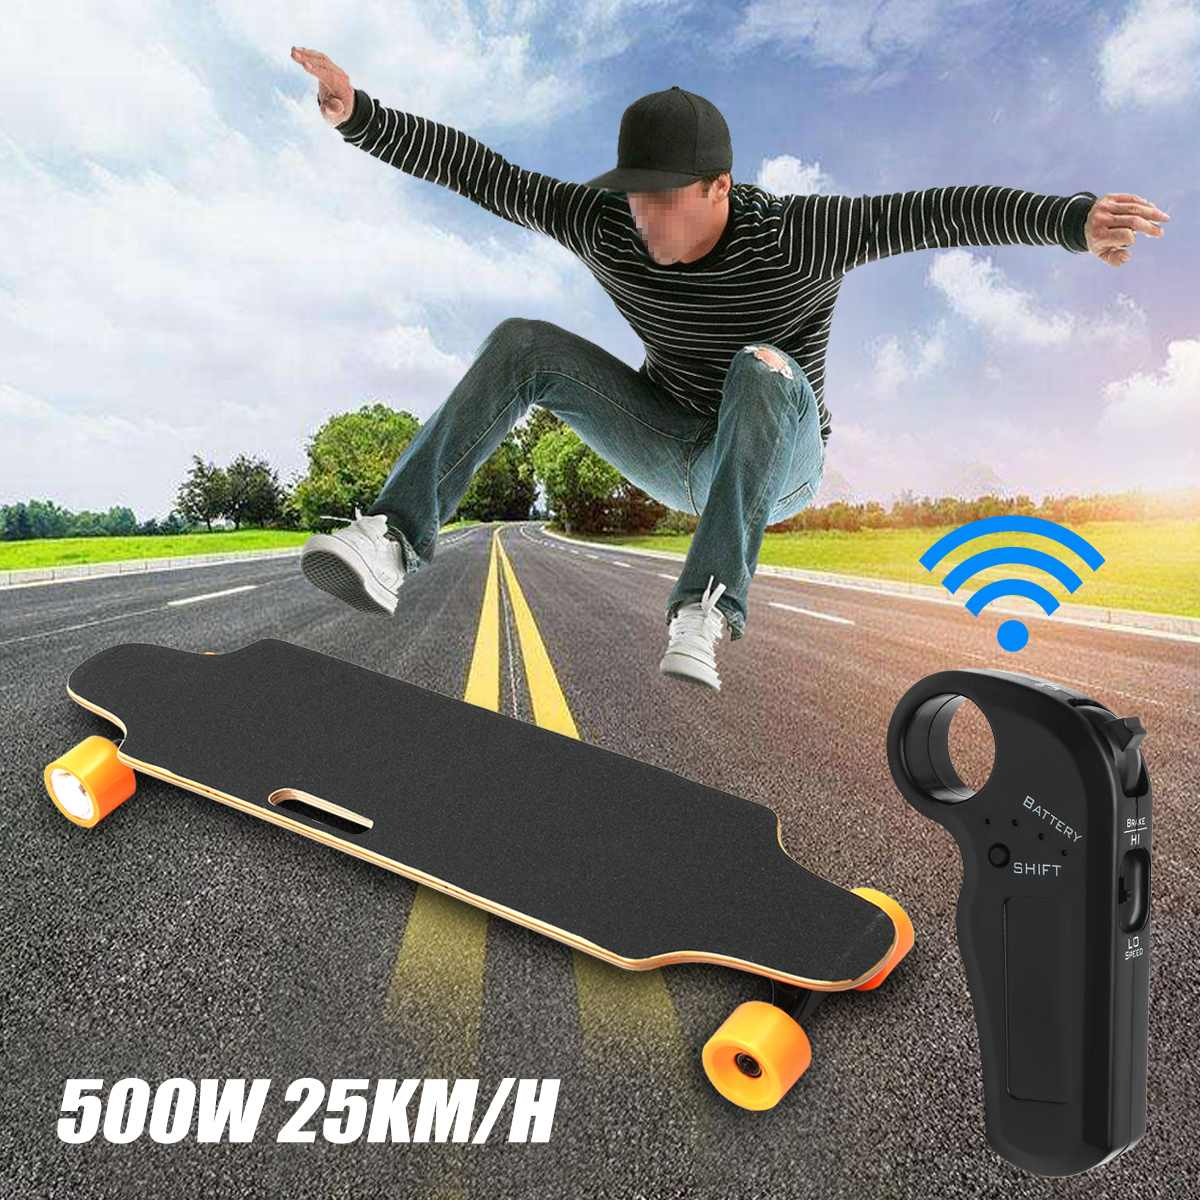 Electric Scooter Dual motor 25km/h 500W Four Wheels Scooter Hoverboard Wireless Remote Control Small Fish Plate Skate Board